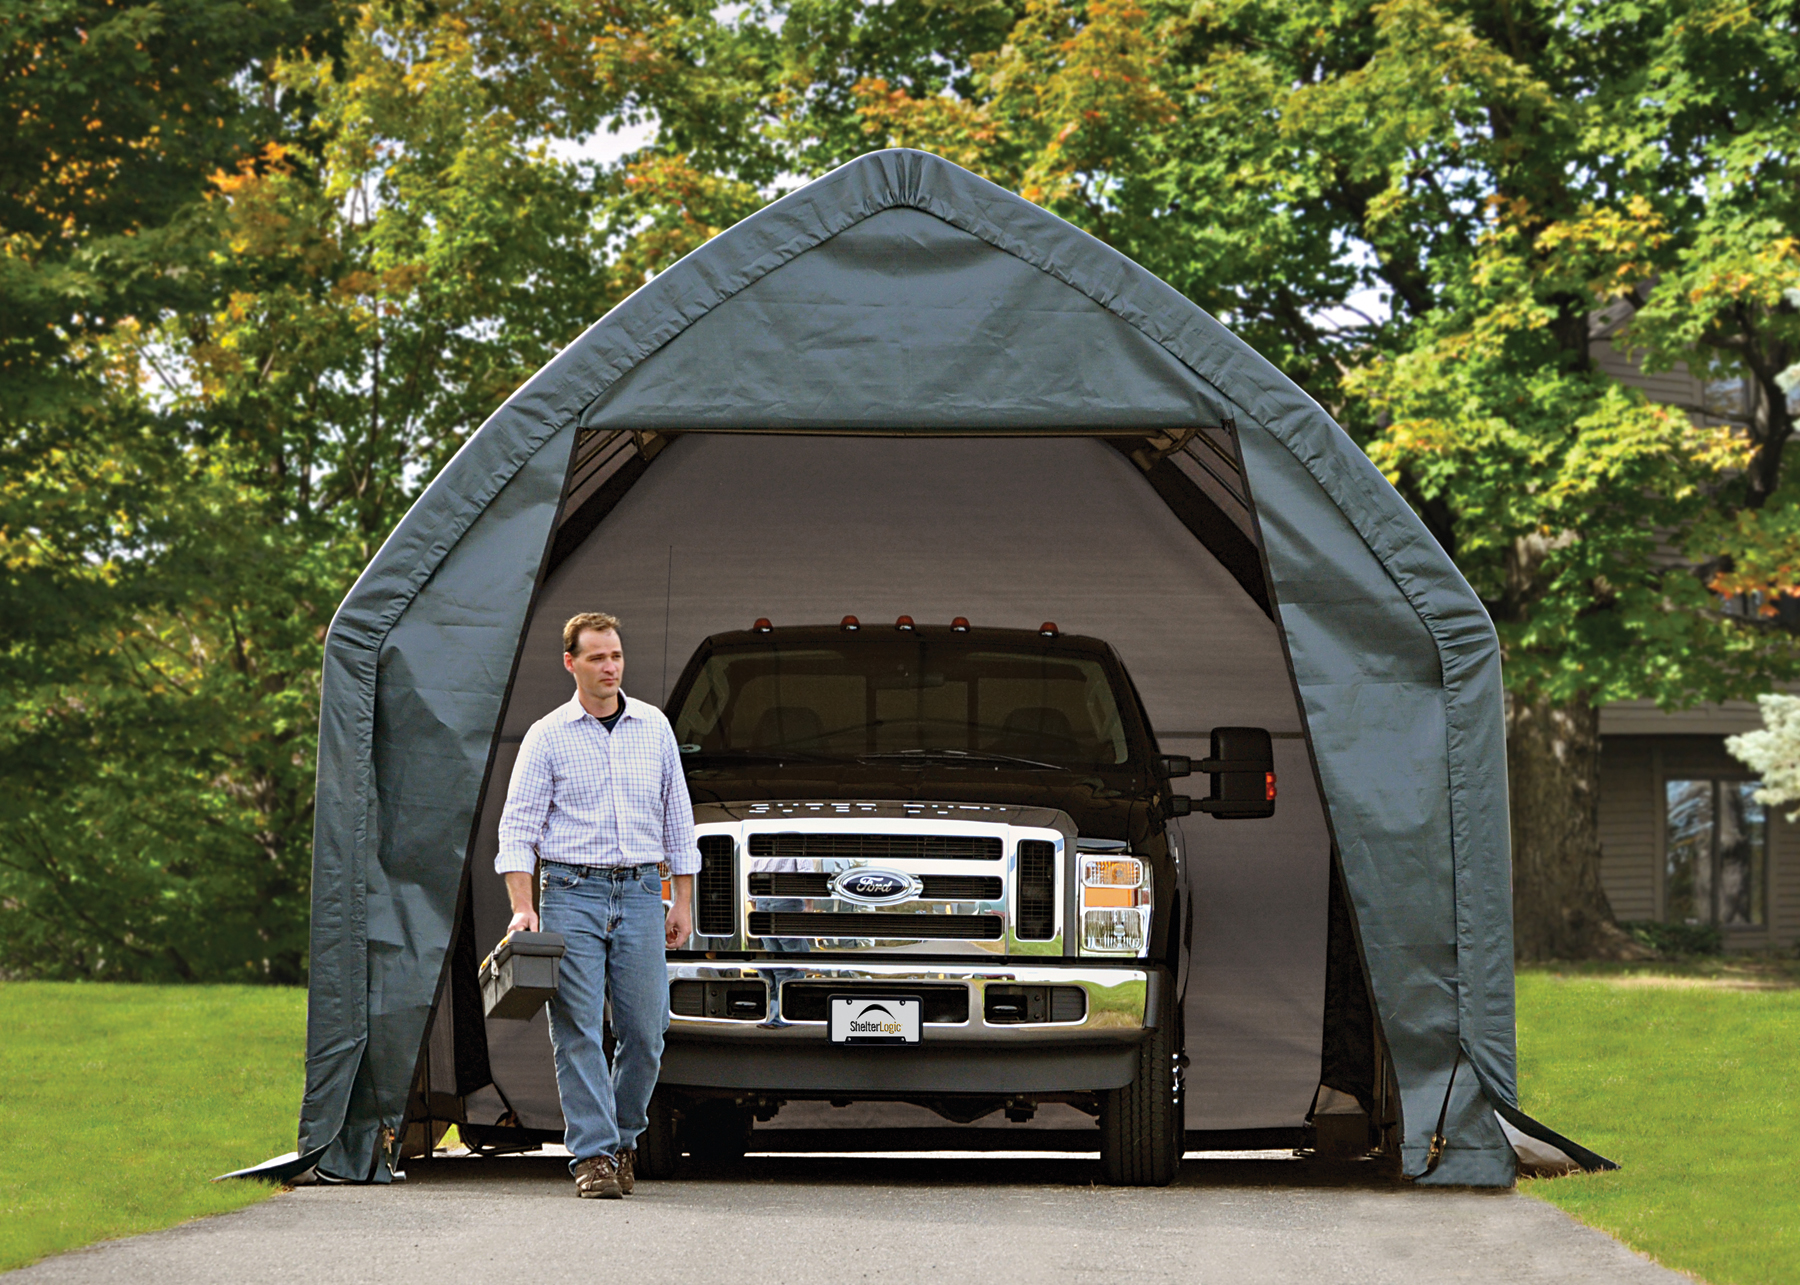 Vehicle Storage Shelter : Truck shelters portable car garage